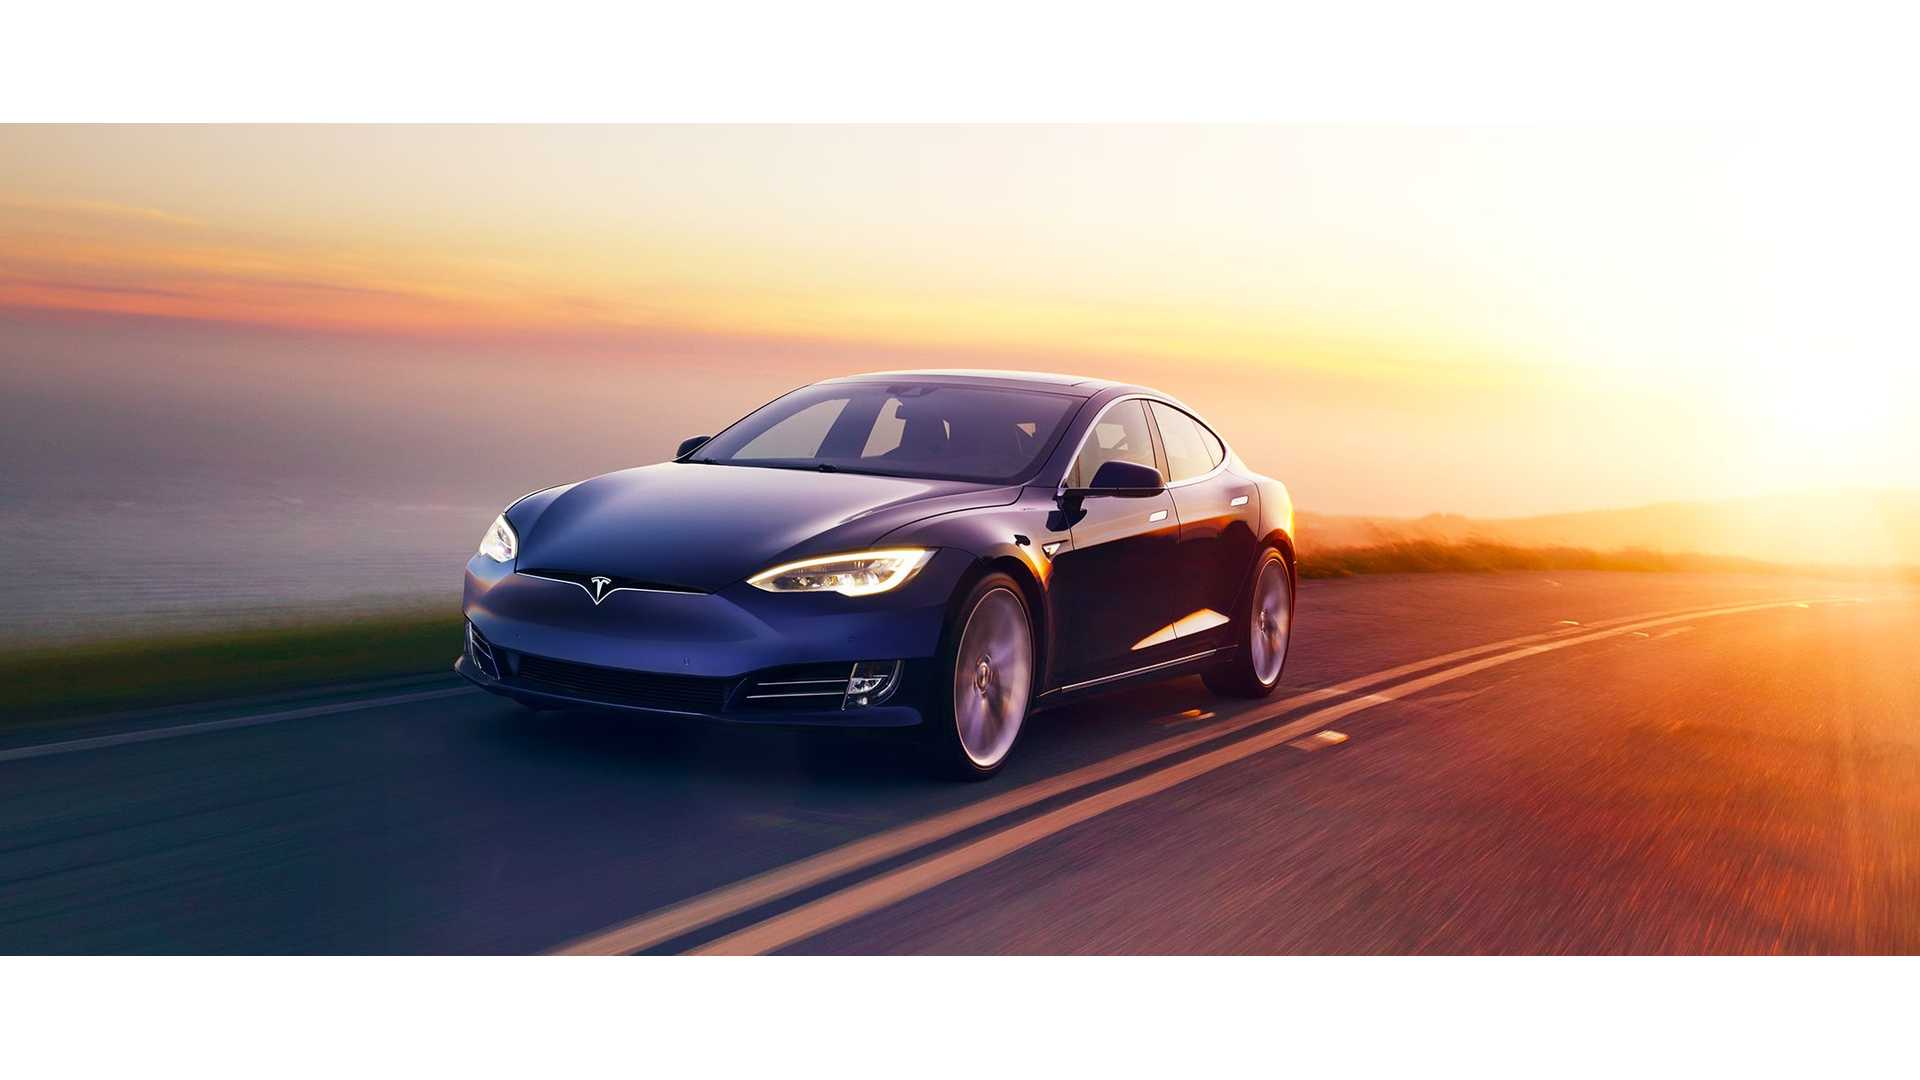 European Roval Tesla 100 Kwh Model S And X Confirmed 381 Miles Range